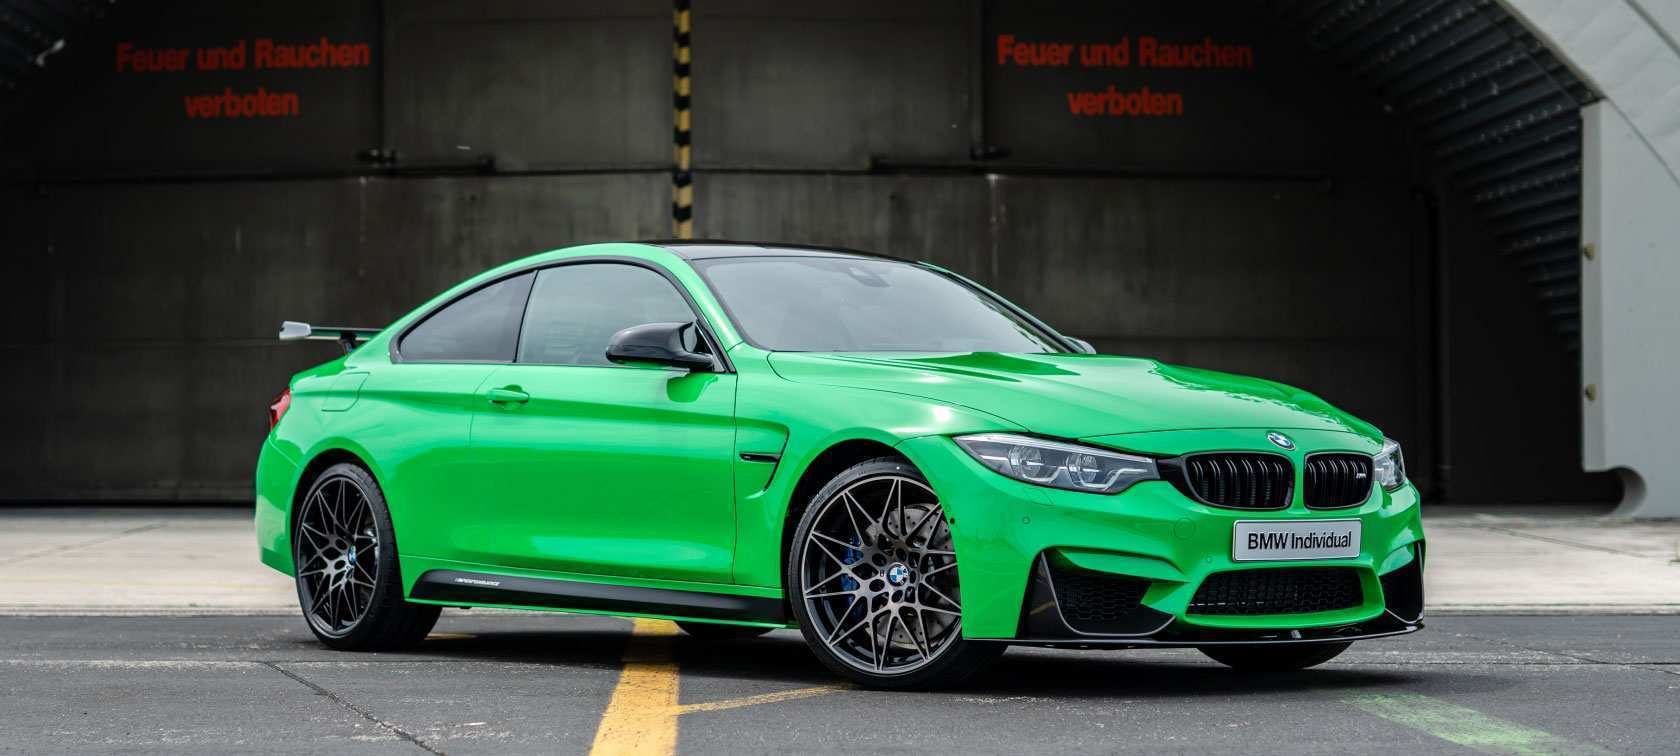 79 A 2020 BMW M4 Colors New Review